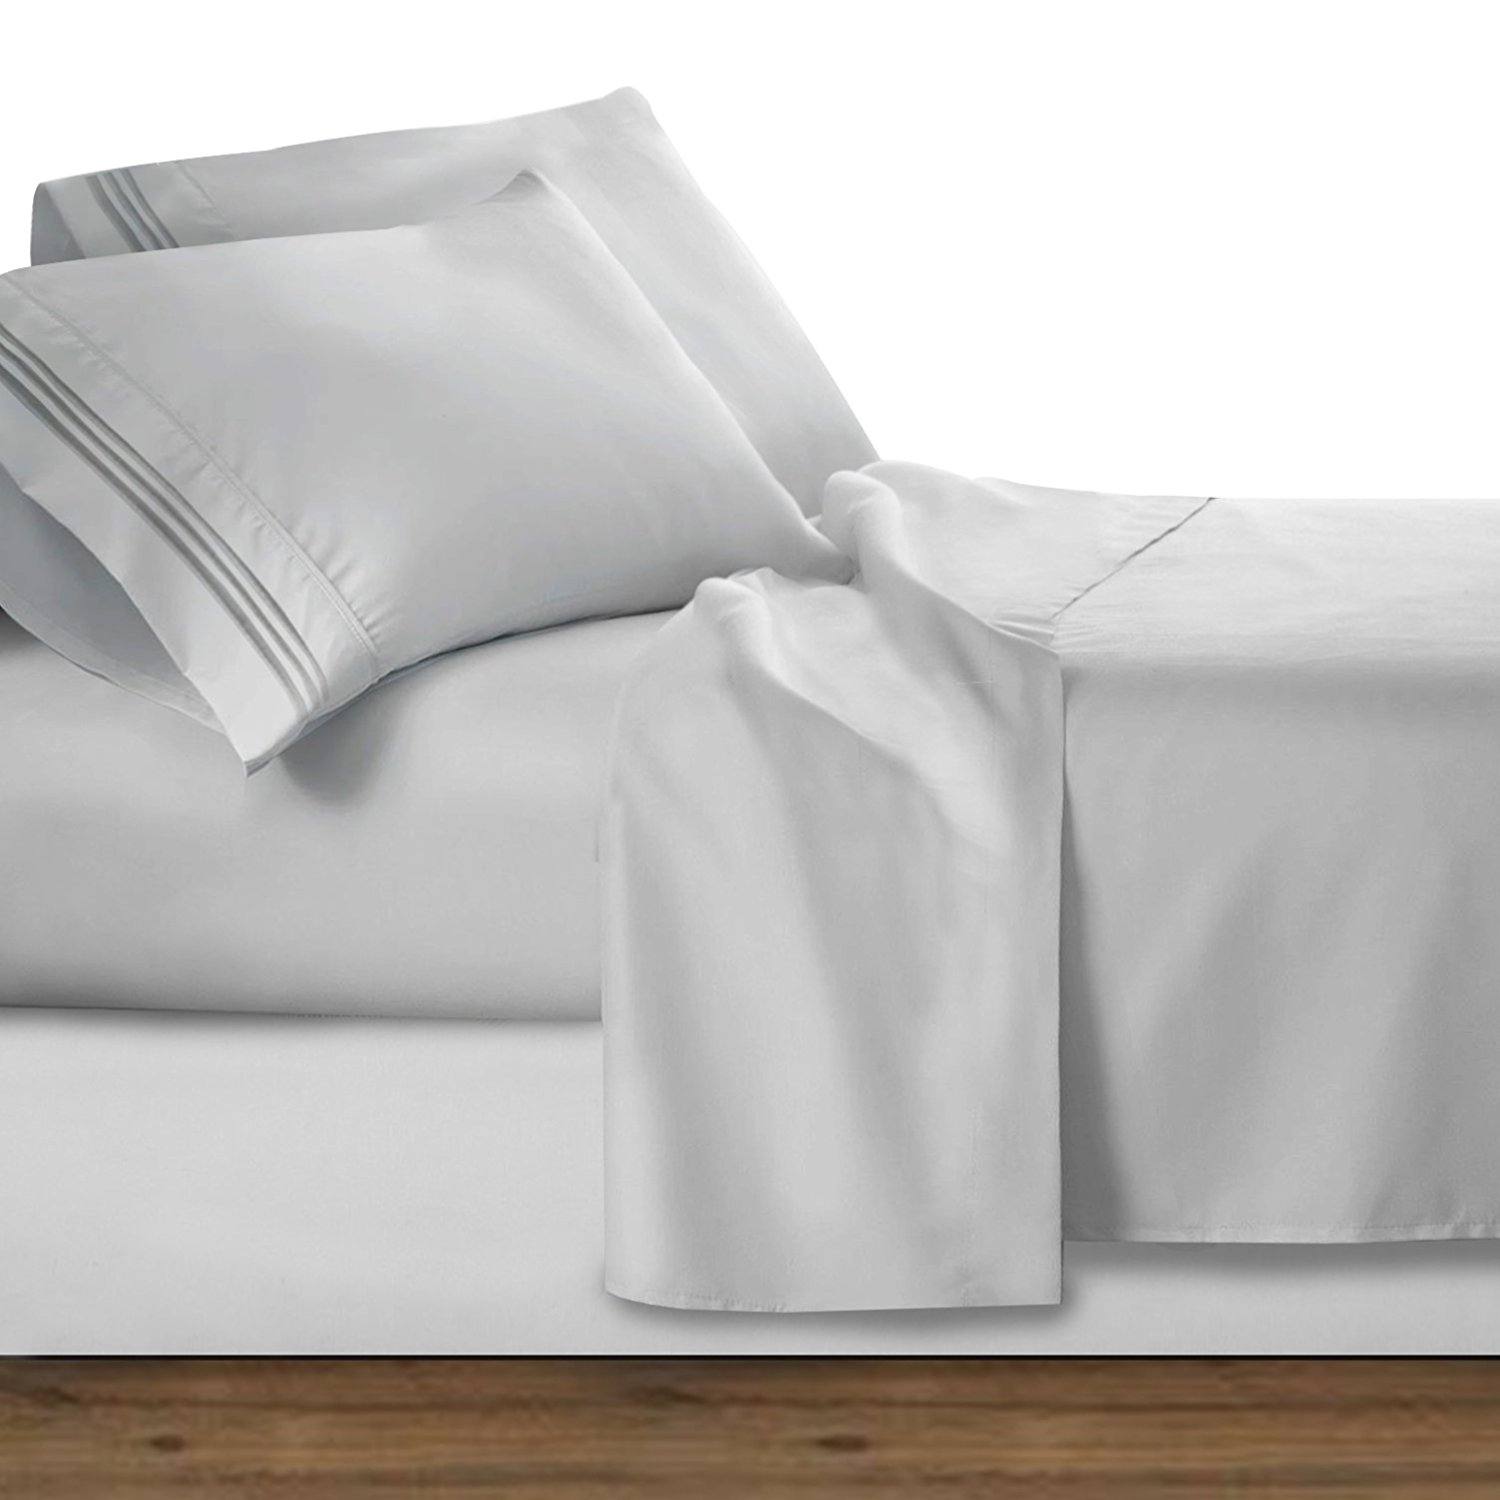 """Premier 1800 Collection Deluxe Microfiber Three Line Bed Sheet Set, Silver Light Gray, Queen, Queen-size 4pc set: flat sheet 102""""x90"""" (259x228cm), fitted sheet 80""""x60"""".., By Clara Clark,USA"""